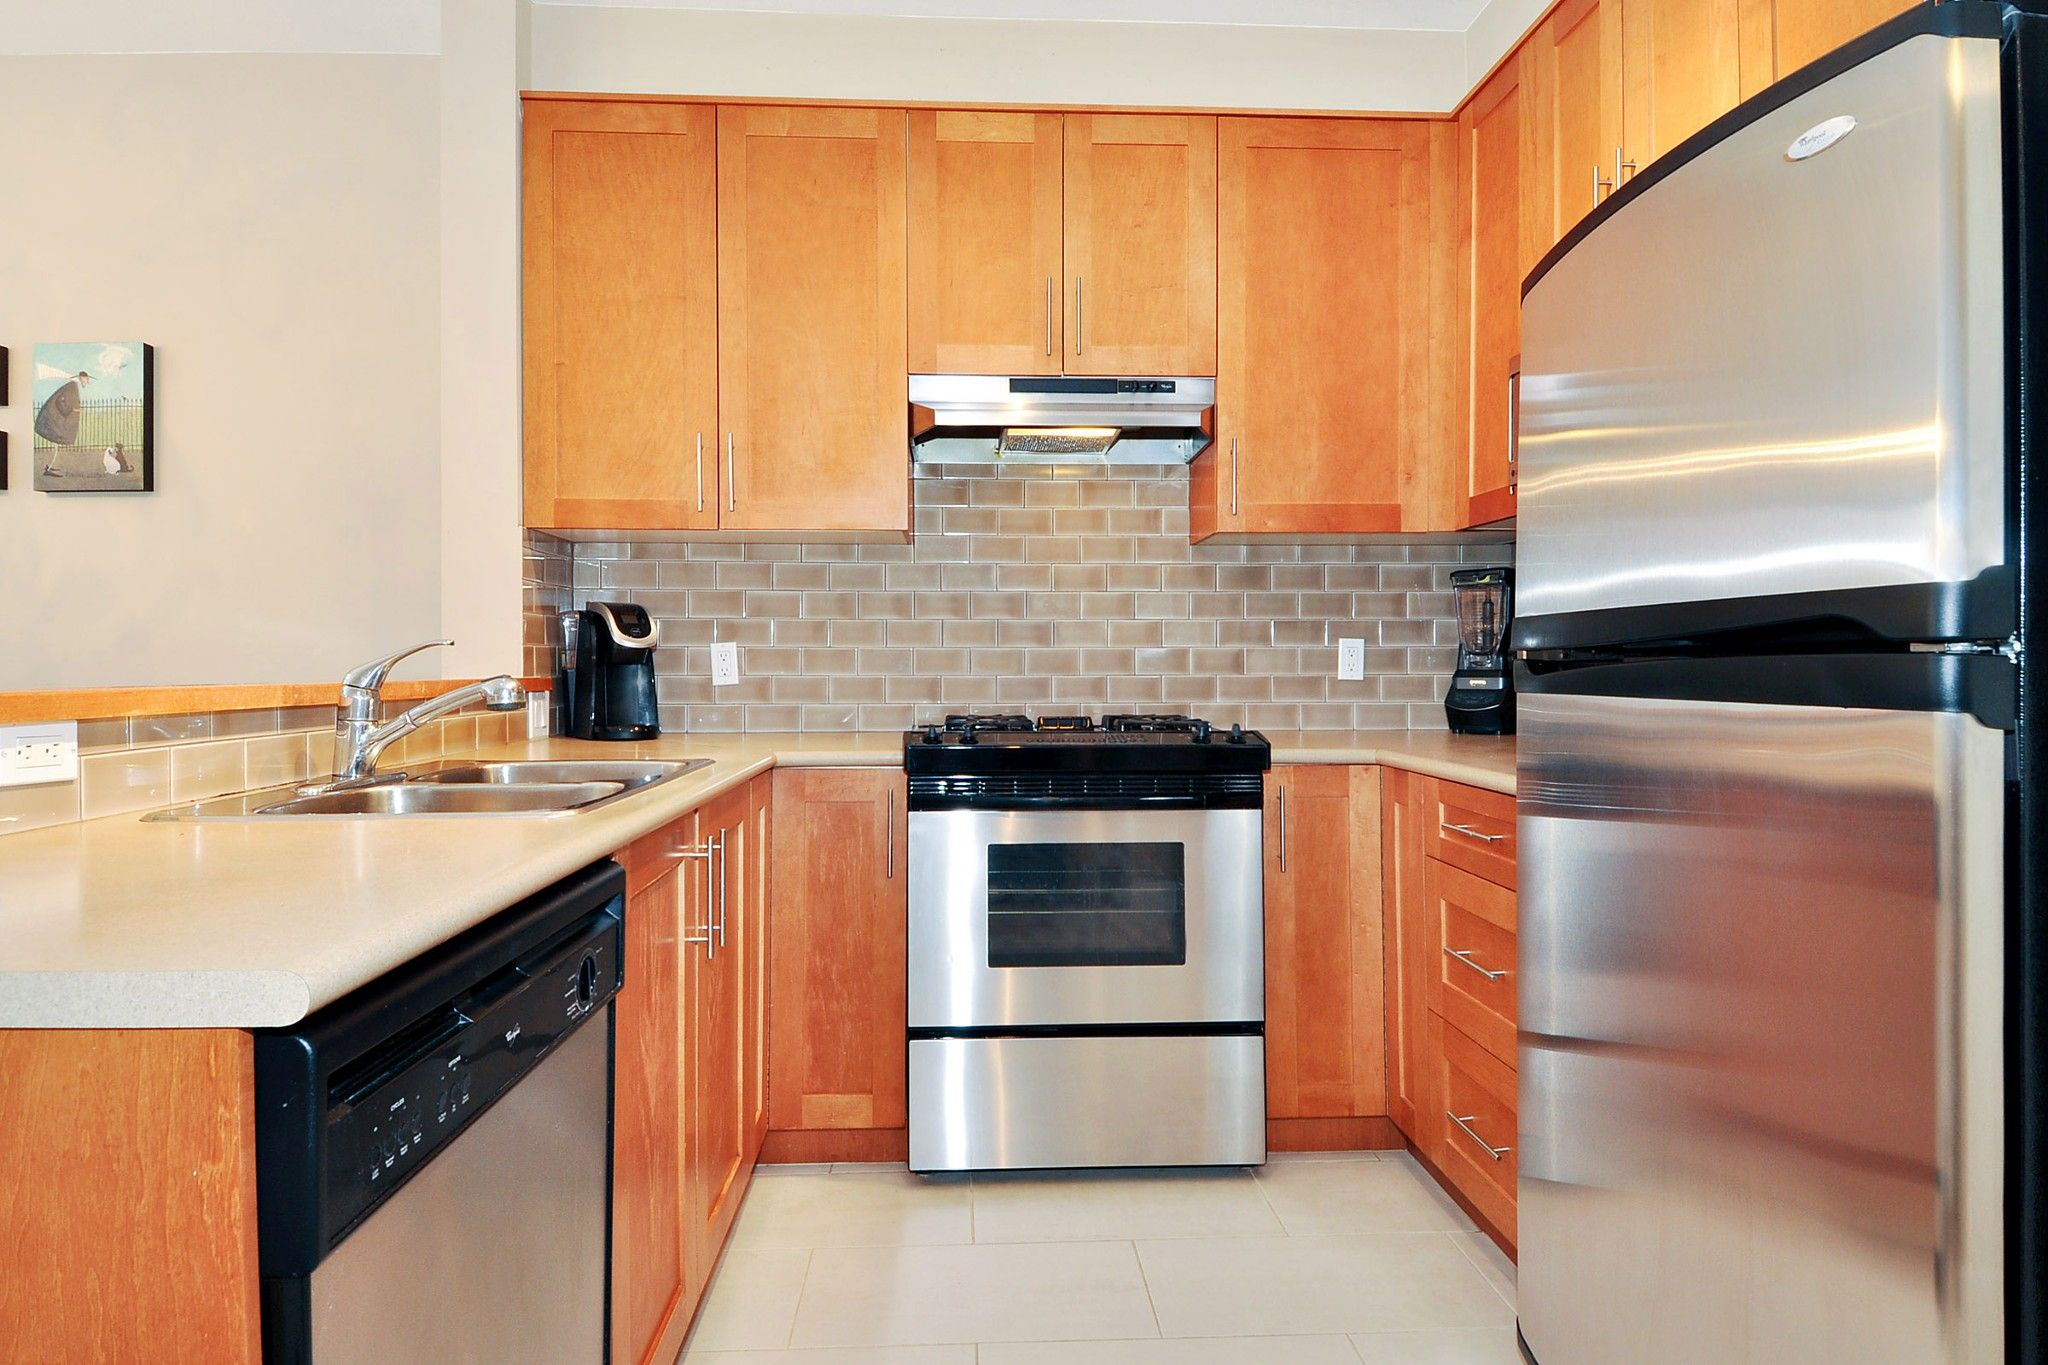 """Photo 7: Photos: 222 2083 W 33RD Avenue in Vancouver: Quilchena Condo for sale in """"DEVONSHIRE HOUSE"""" (Vancouver West)  : MLS®# R2341234"""